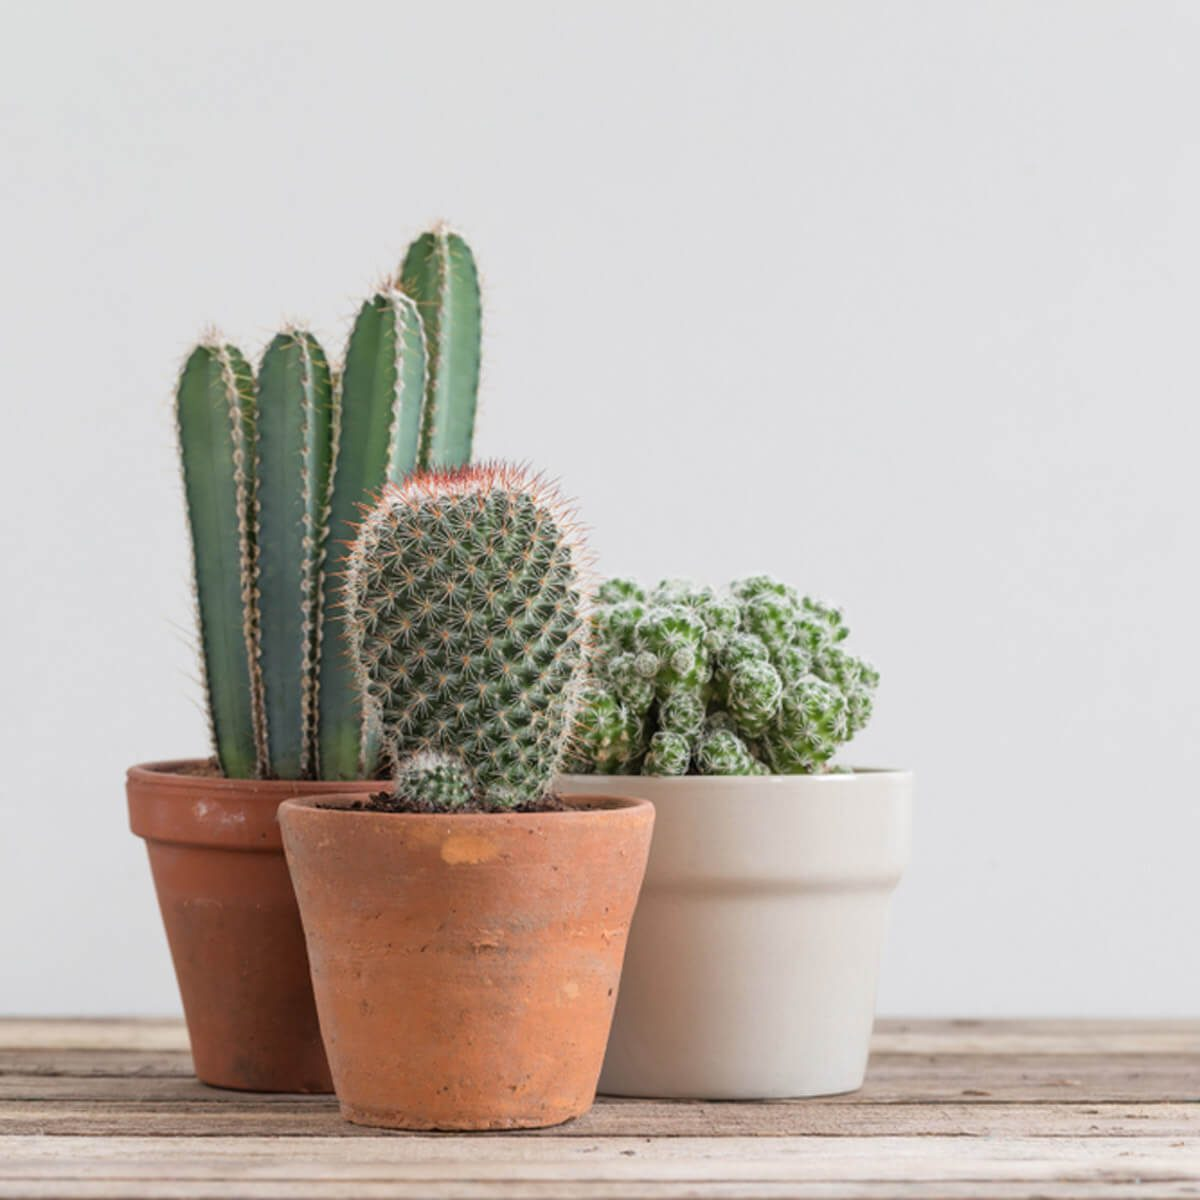 14 Ways To Decorate Your Home With Cactus The Family Handyman